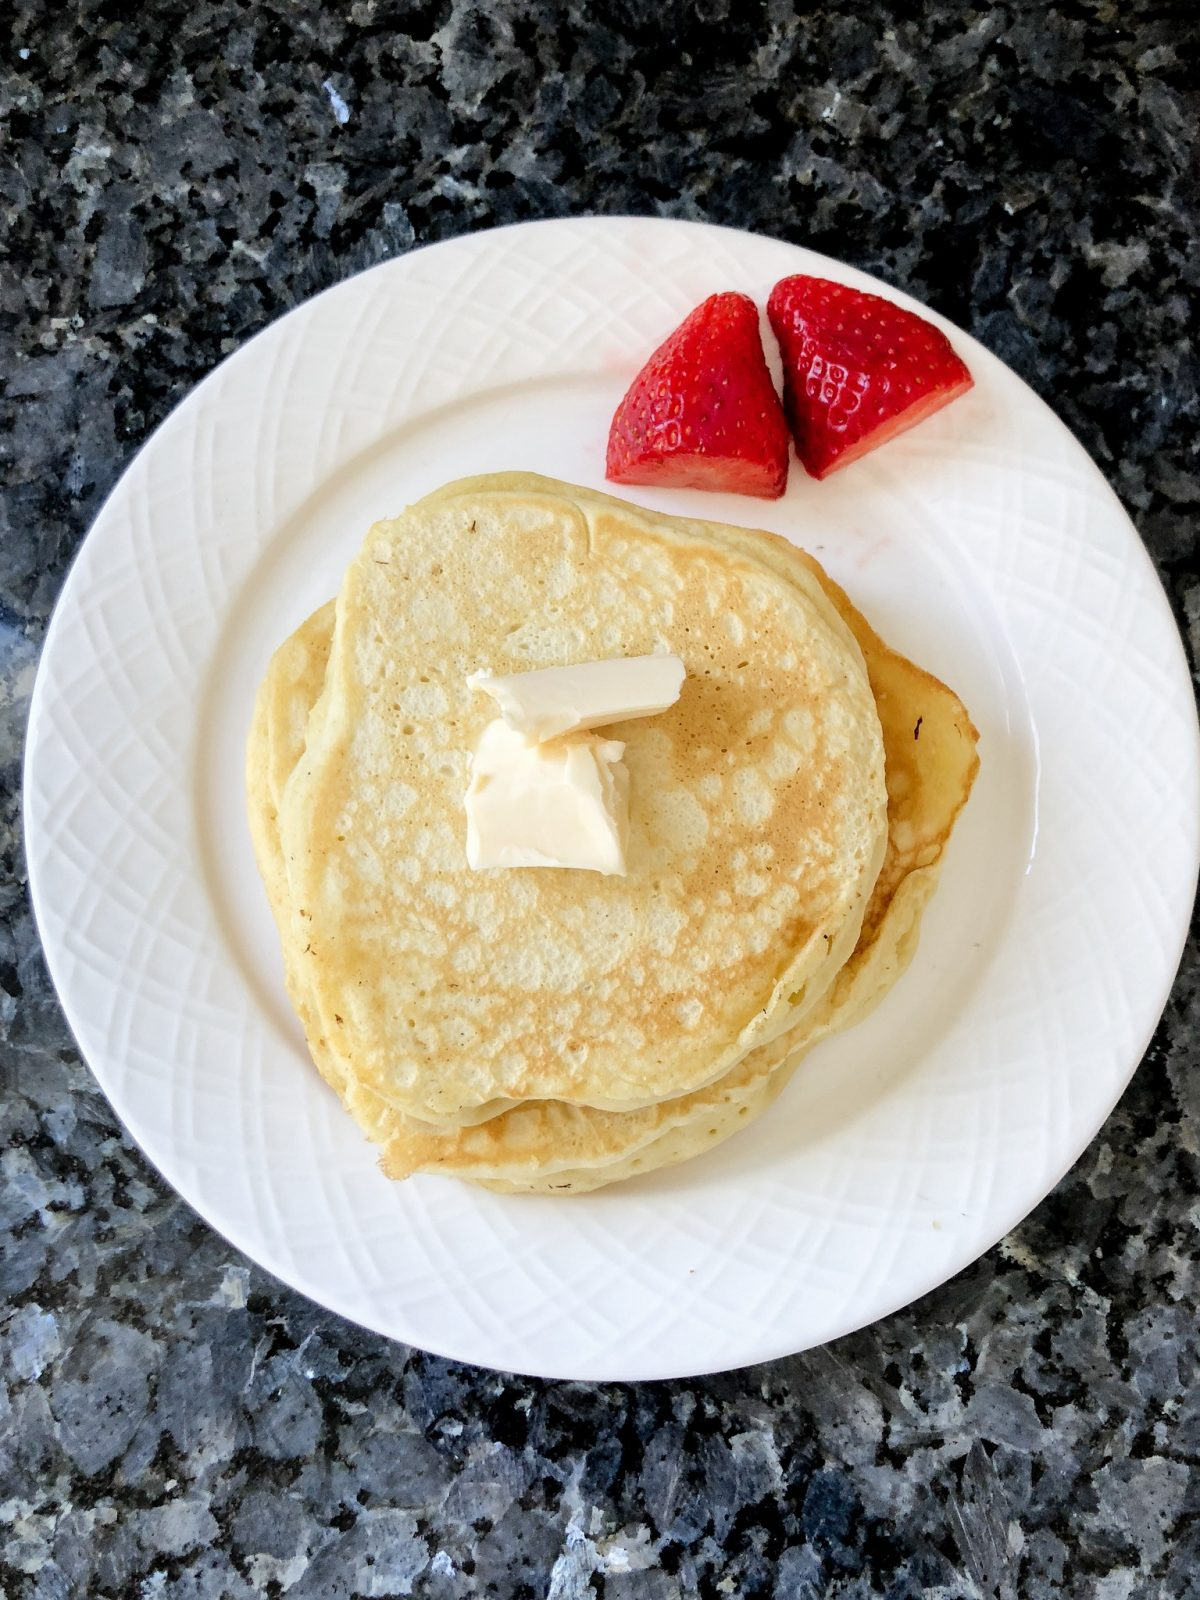 Pancakes with butter on top and two strawberries on a white plate